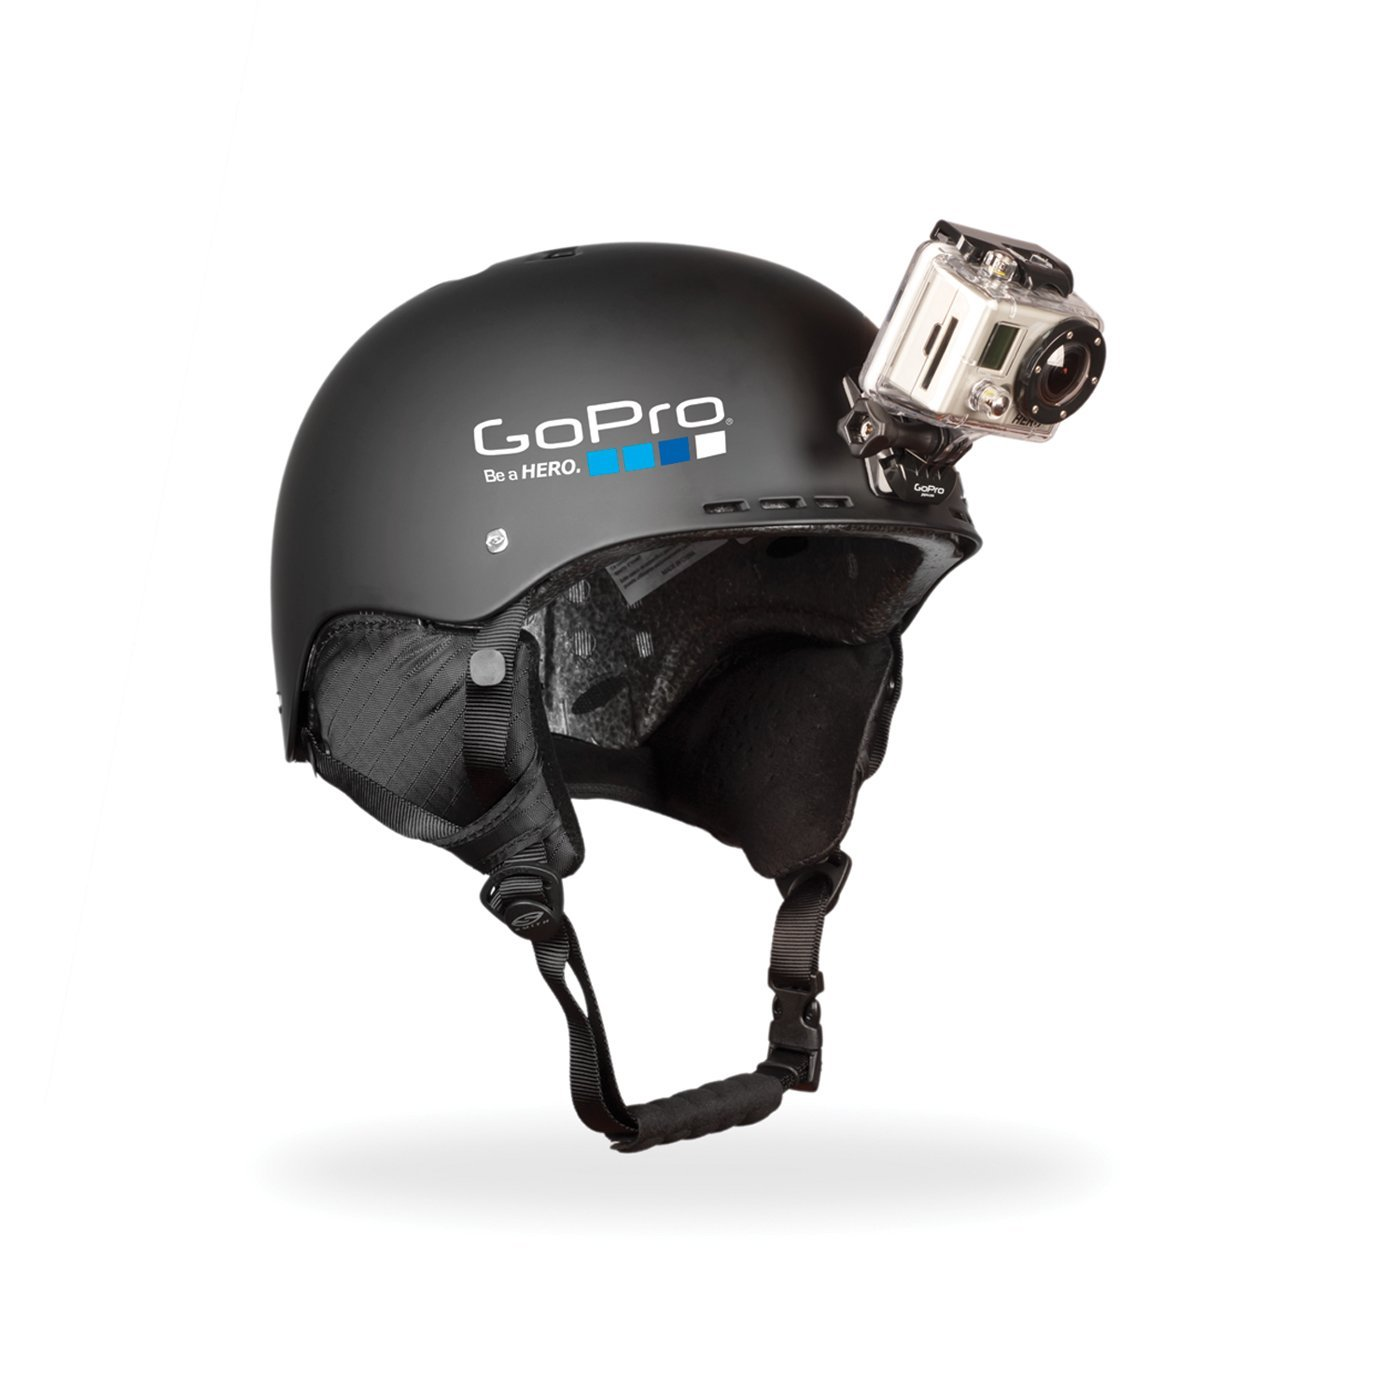 GoPro HD HERO2: Motorsports Edition Product Features and Pictures